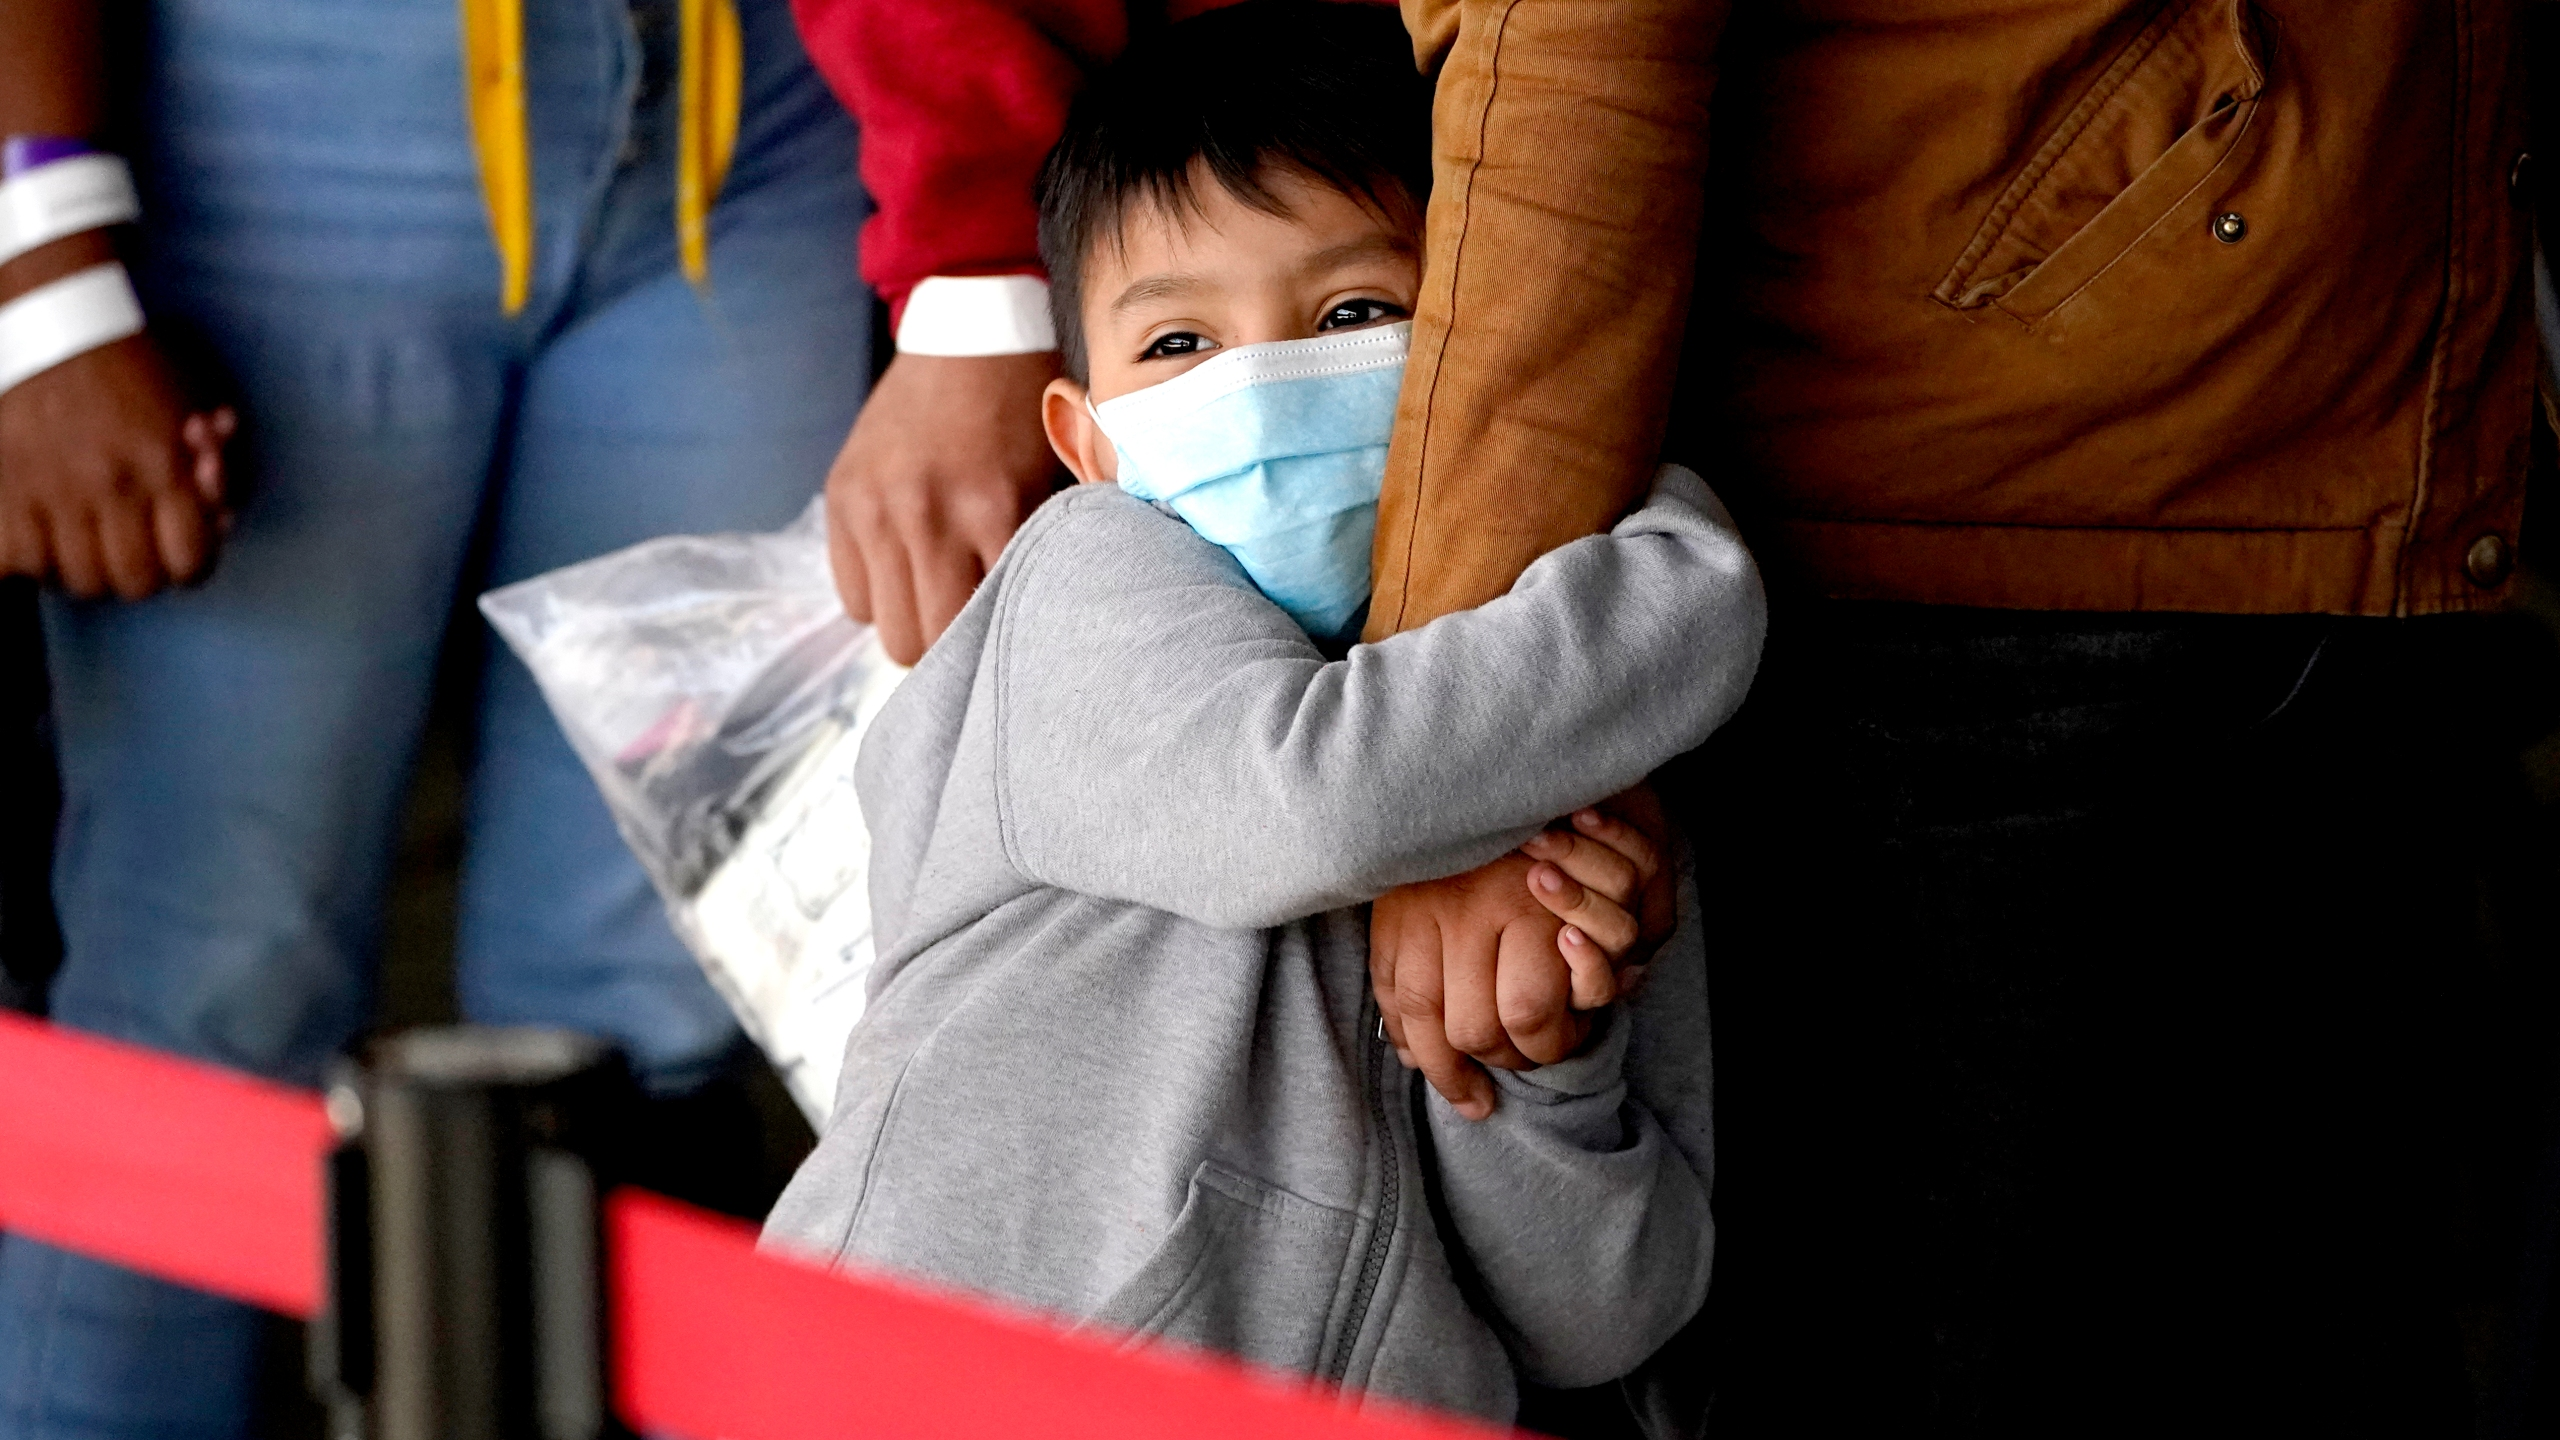 A migrant child holds onto a woman's arm as they wait to be processed by a humanitarian group after being released from U.S. Customs and Border Protection custody at a bus station, Wednesday, March 17, 2021, in Brownsville, Texas. (AP Photo/Julio Cortez)